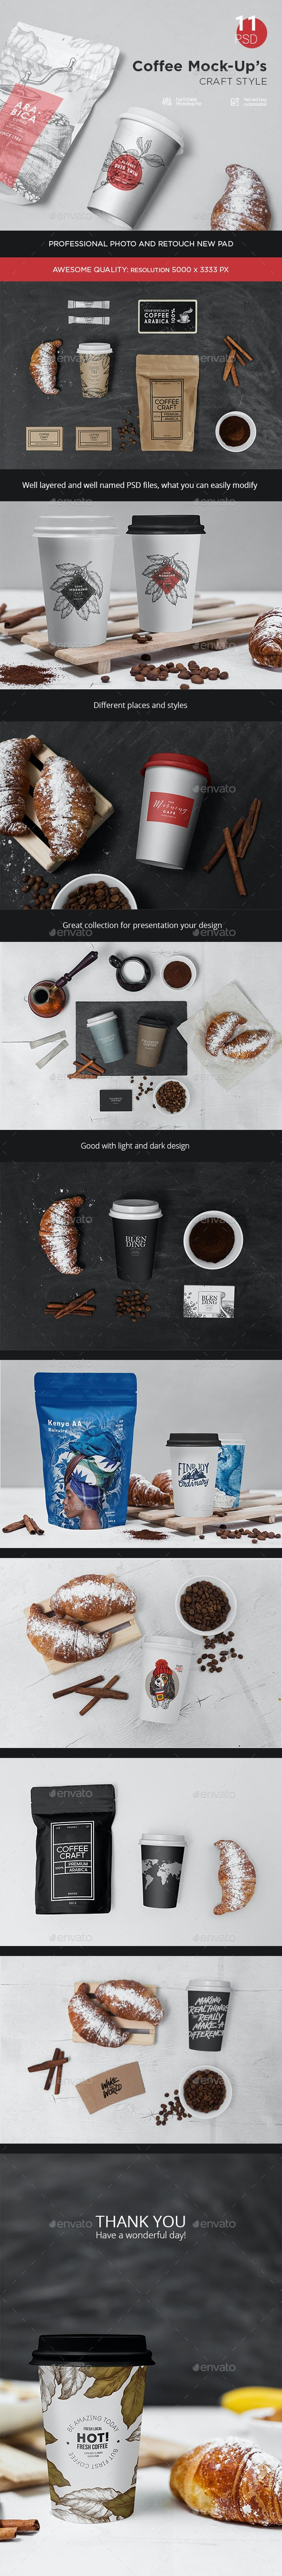 Coffee Mock-Up's Craft Style - Product Mock-Ups Graphics